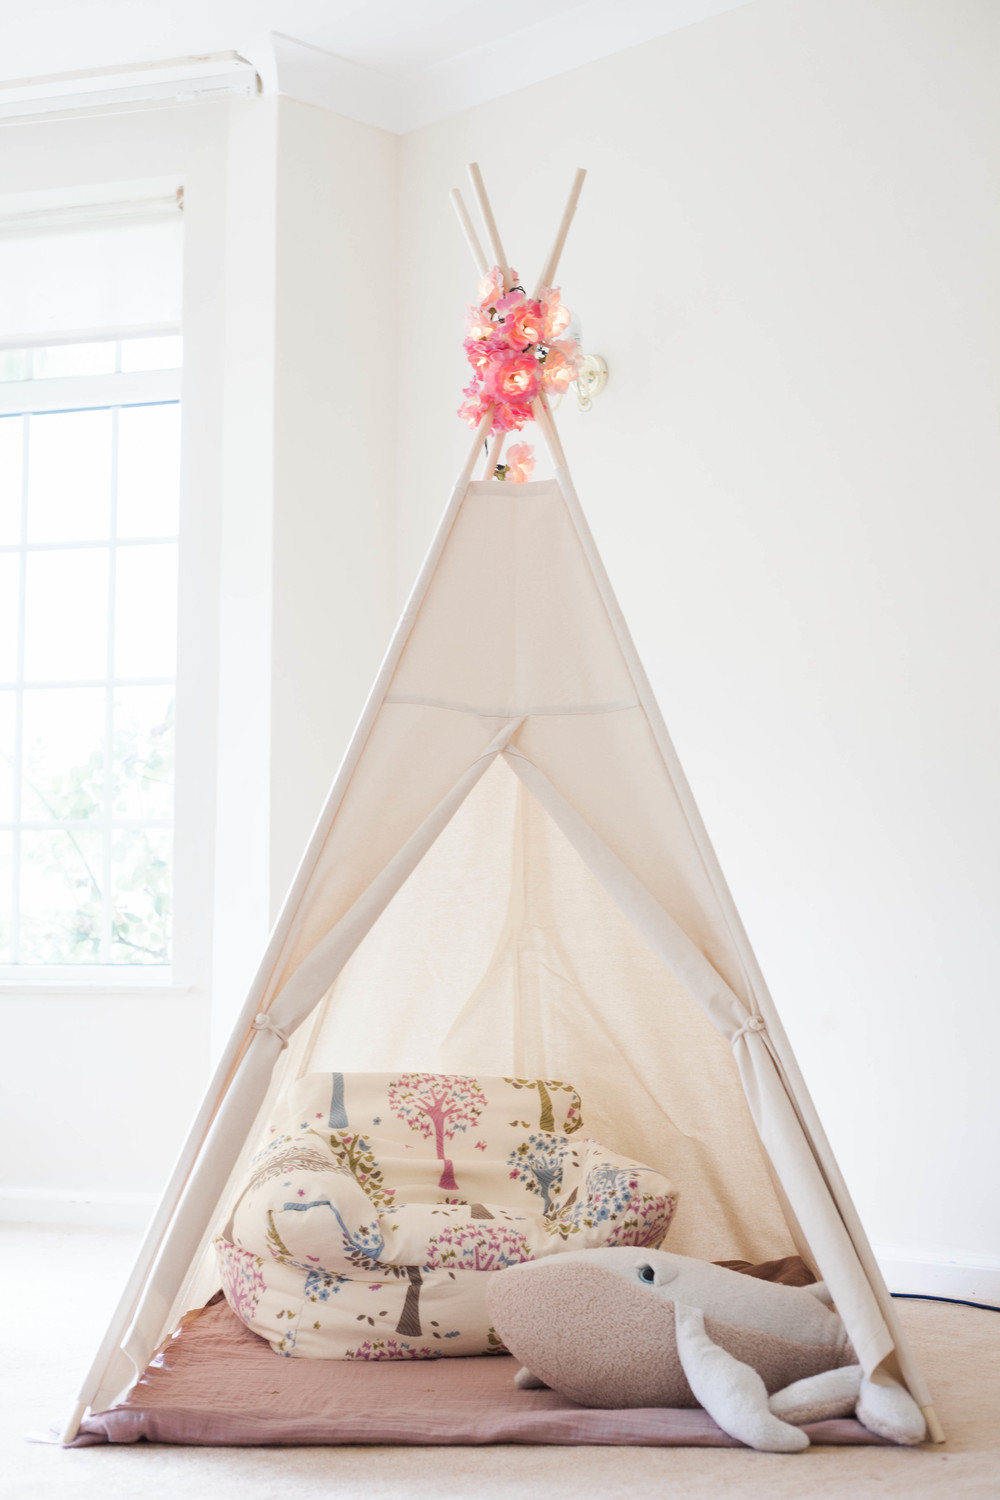 Cotton canvas teepee from LittleMe Teepee.